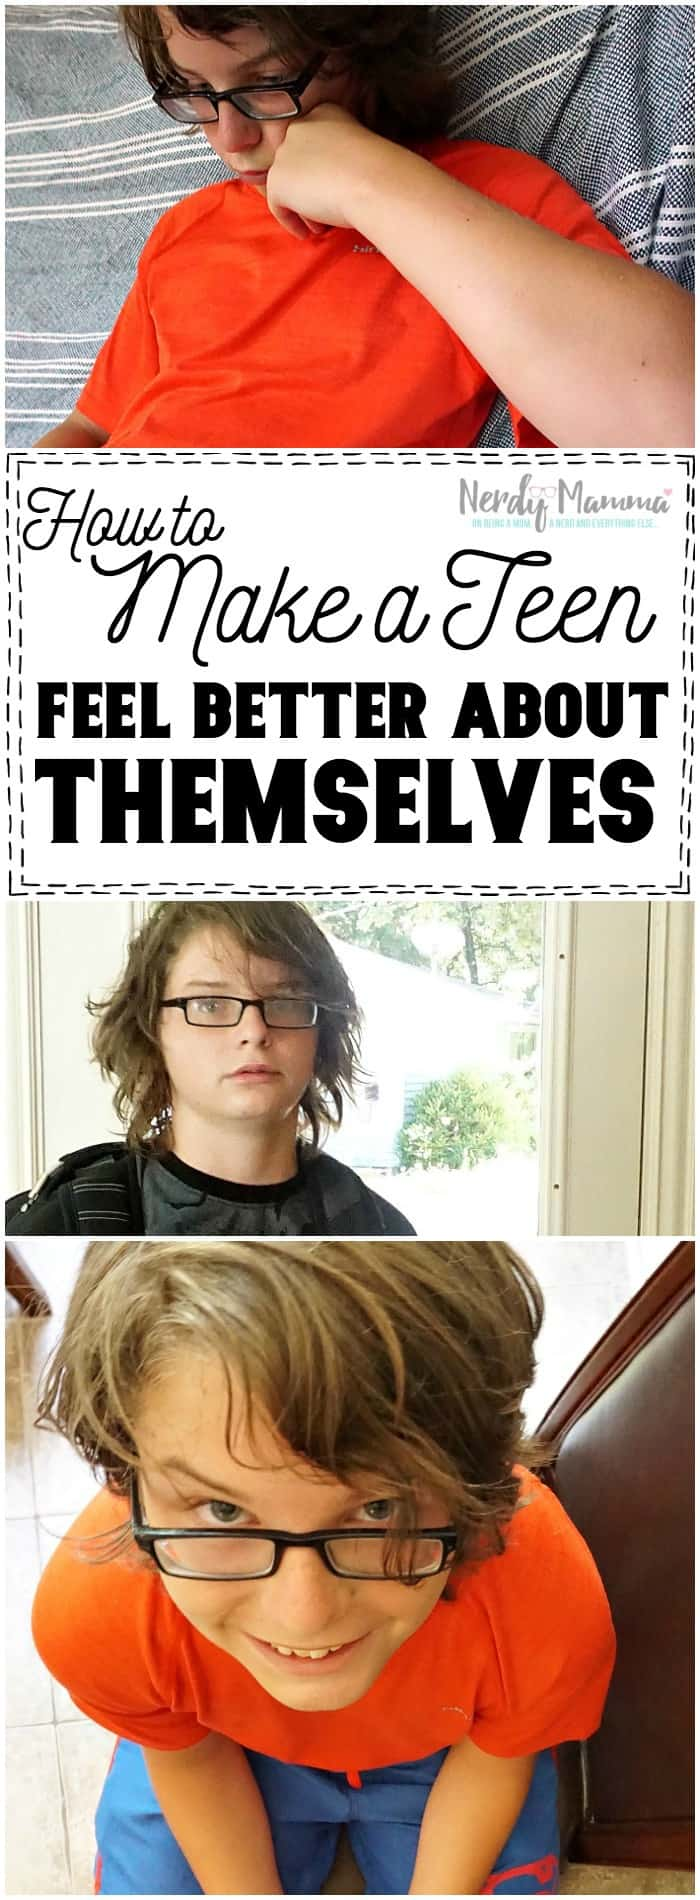 I love this easy, ONE Step to helping a teen feel better about themselves. So awesome.